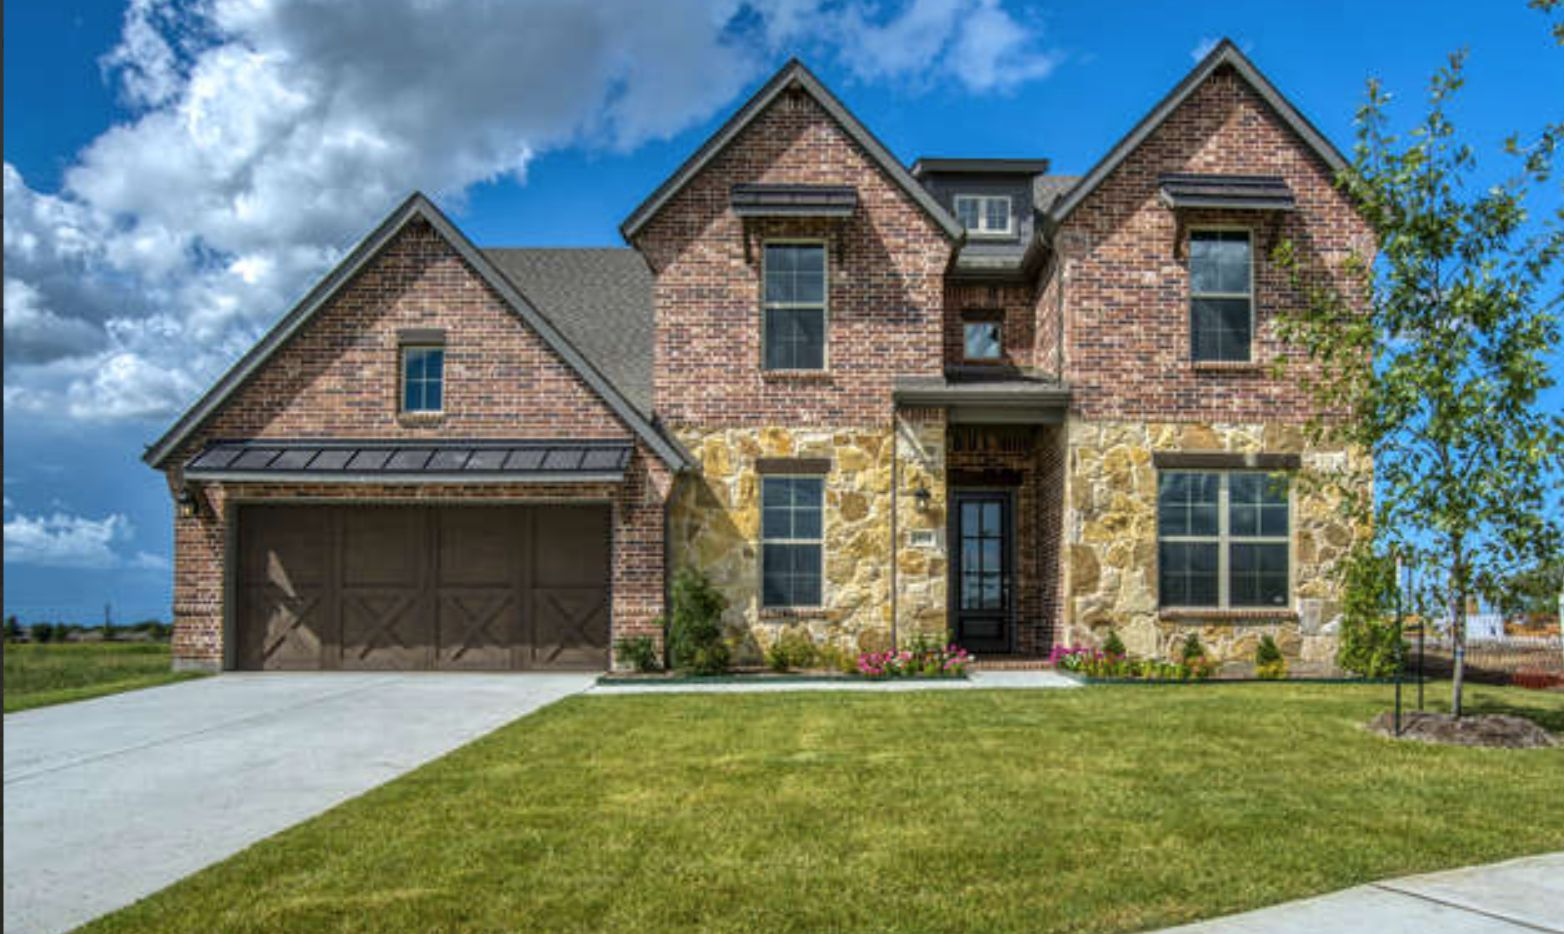 One of New Synergy Homes' new houses in Frisco.